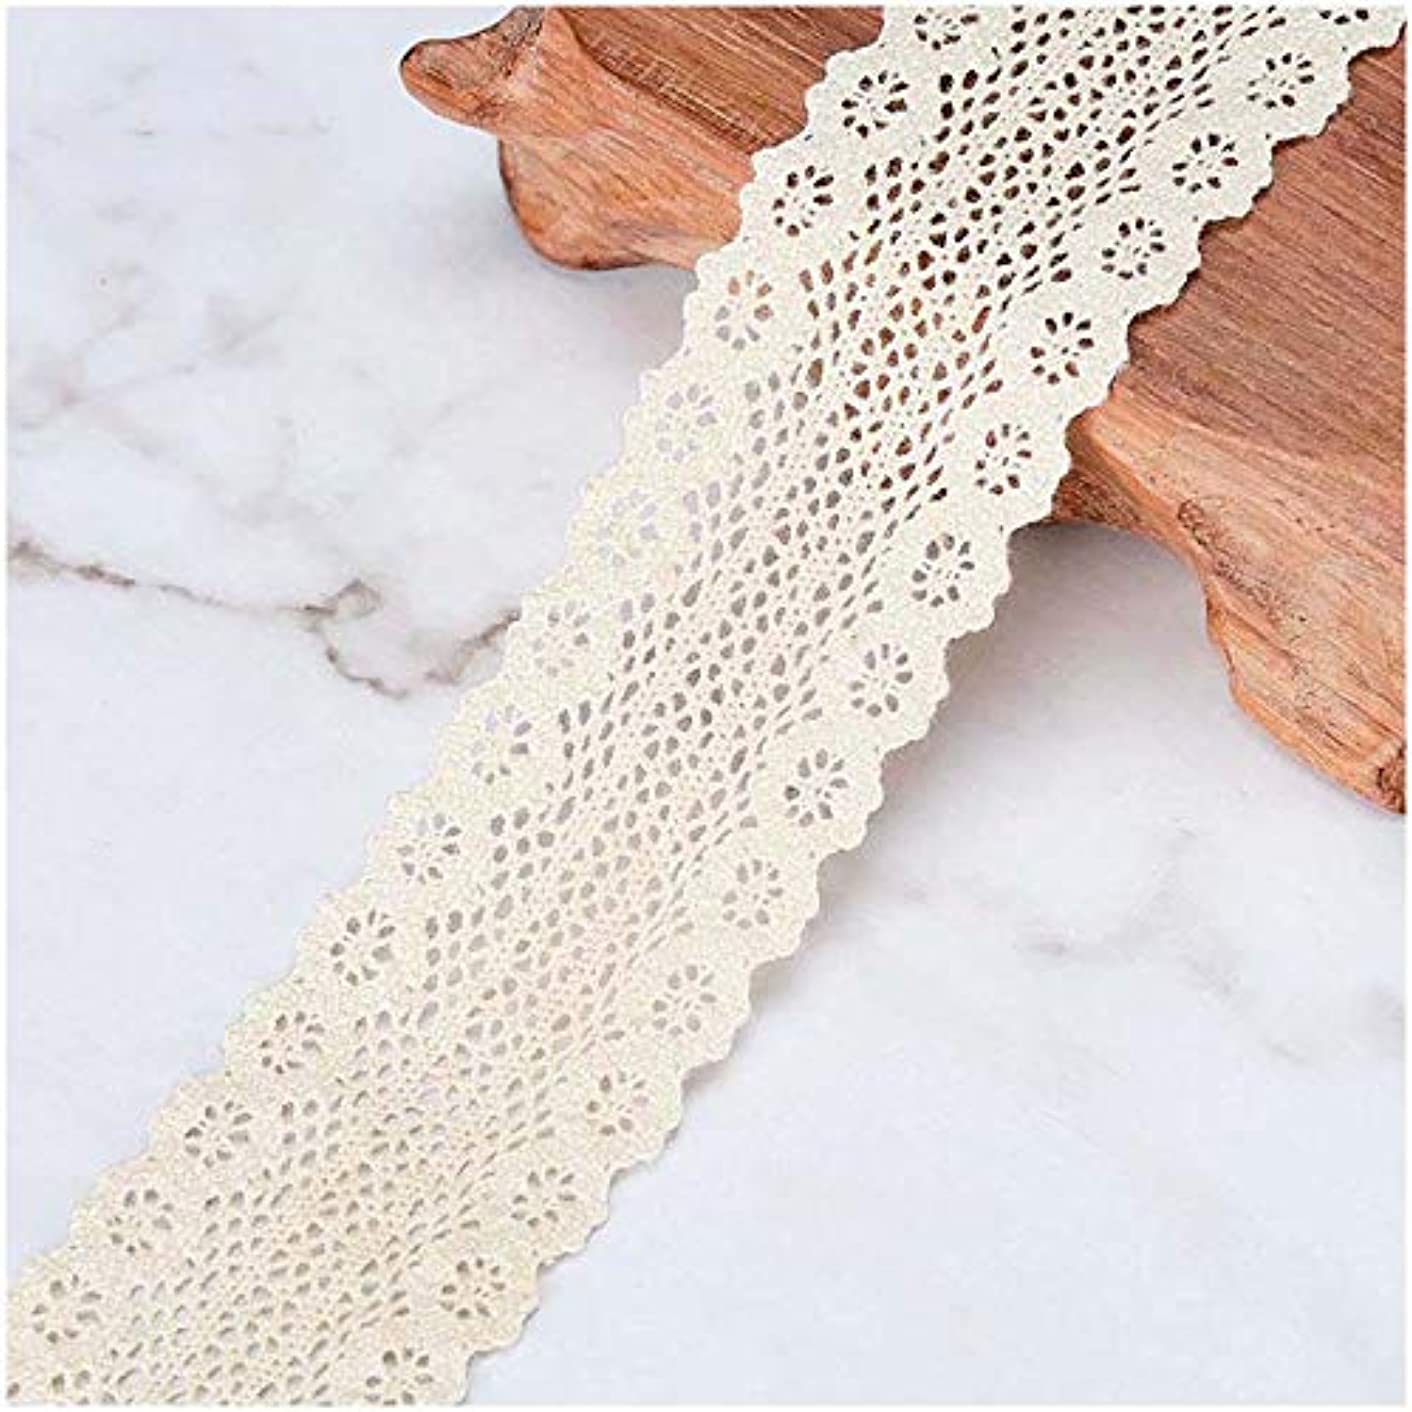 VU100 Crochet Lace Trim Ribbon Cotton, 1-1/4 Inches Sewing Lace Fabric Trim, for Gift Wrapping Lace Ribbon DIY Craft Wedding Decor(5 Yards, Beige)